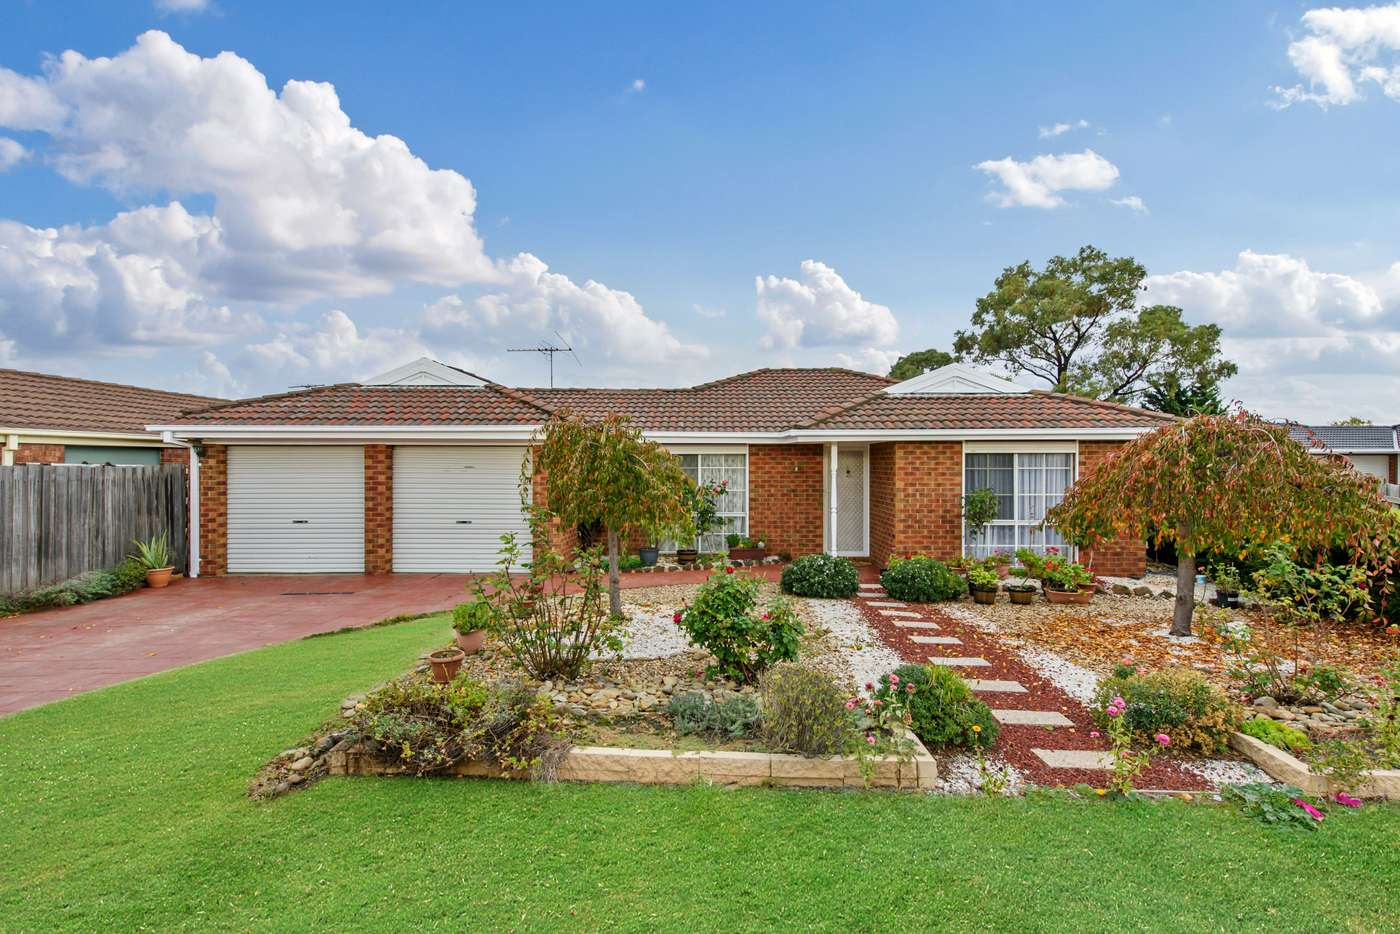 Main view of Homely house listing, 7 Pollock Court, Delahey VIC 3037